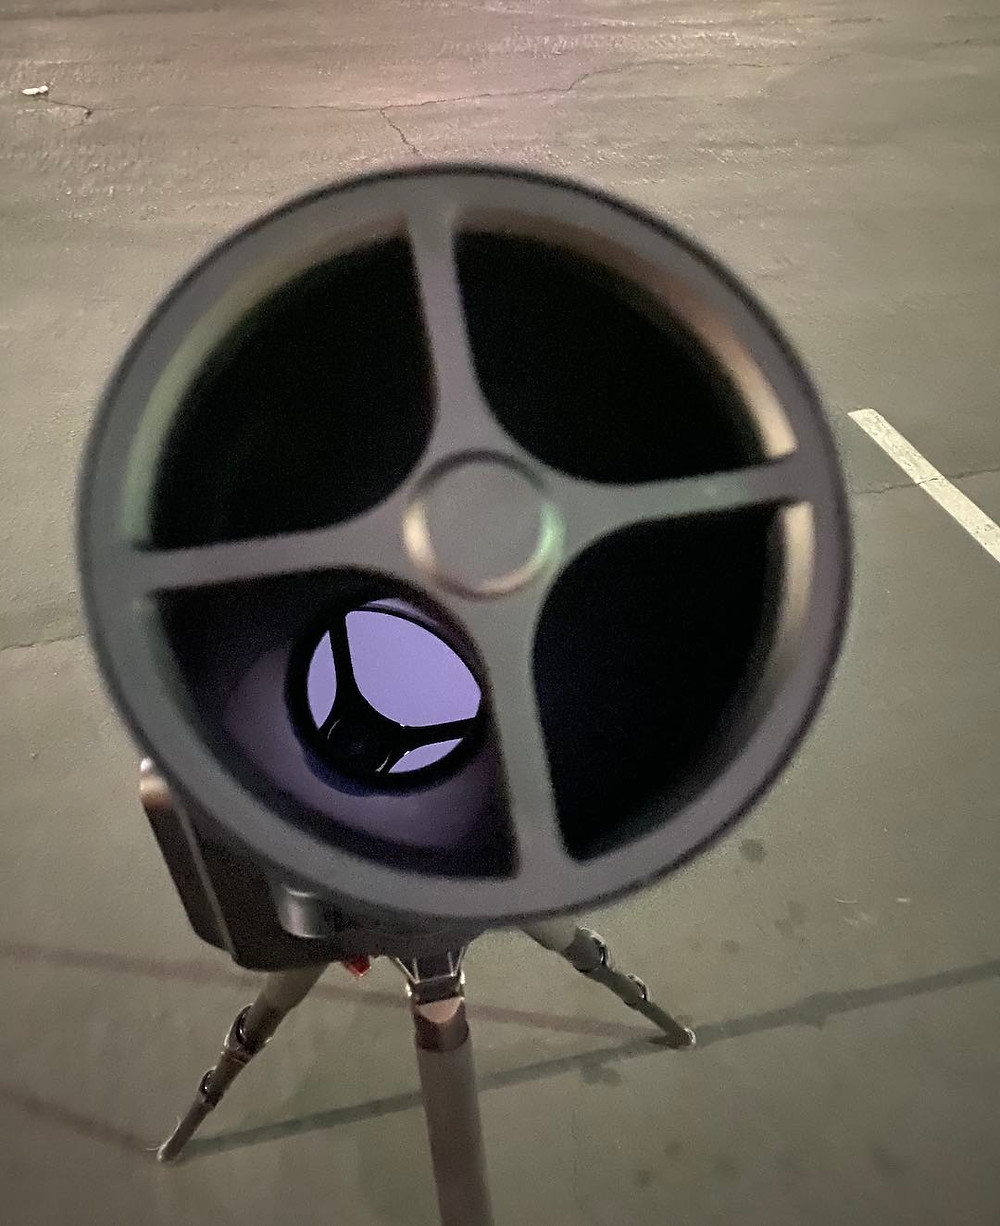 Unistellar EVscope primary mirror